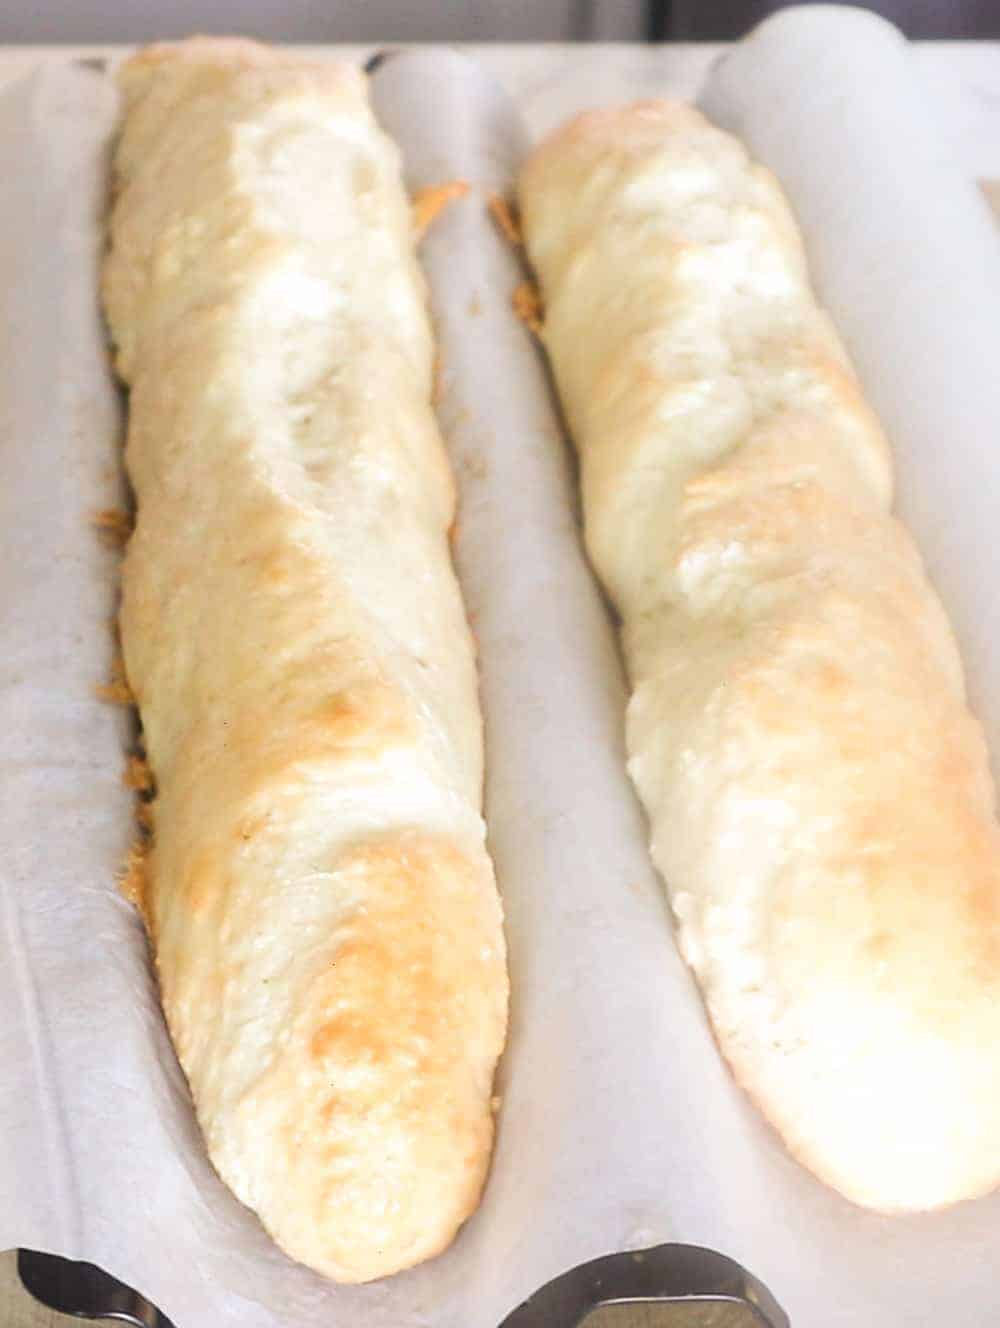 keto baguette, keto baguette recipe, keto french baguette, low carb baguette recipe, low carb baguette, low carb french baguette recipe, how to make keto baguettes, gluten free baguettes,